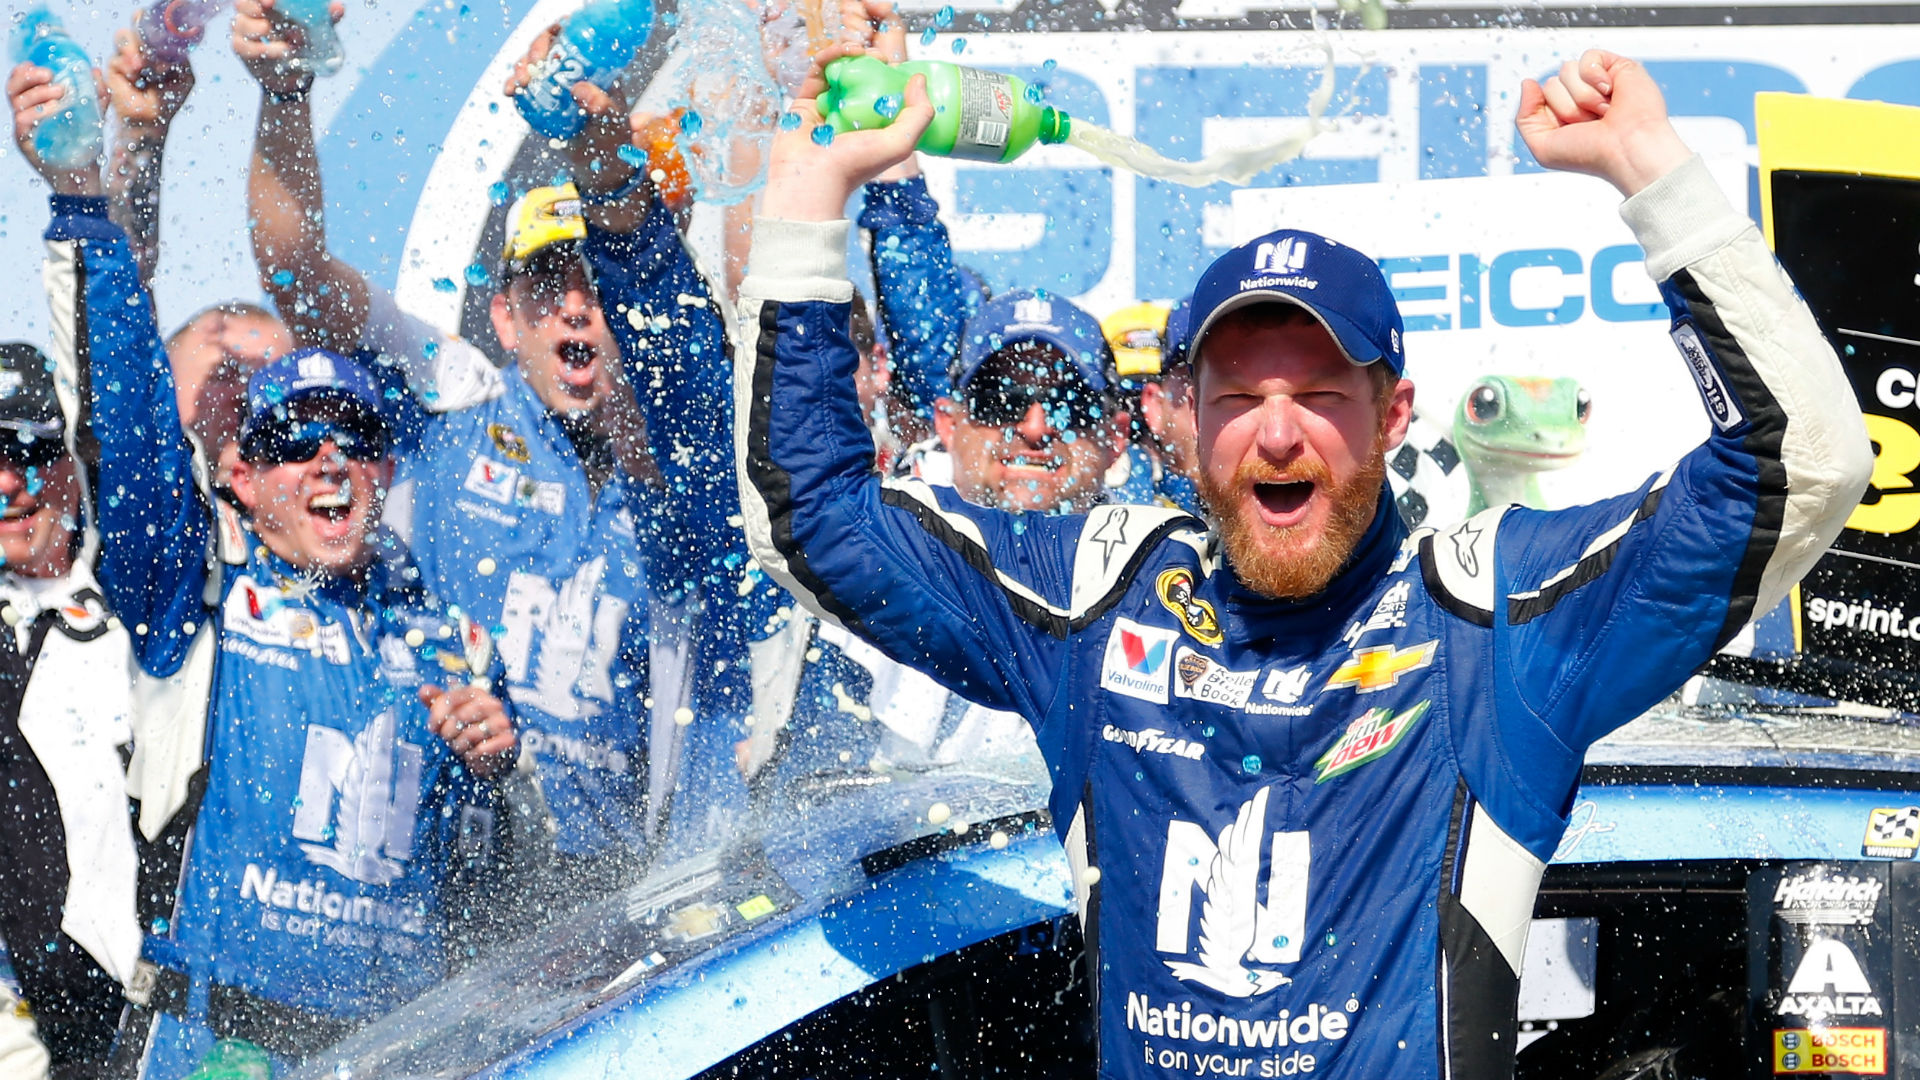 Phoenix Raceway likely Dale Earnhardt Jr.'s final chance at a win before retirement